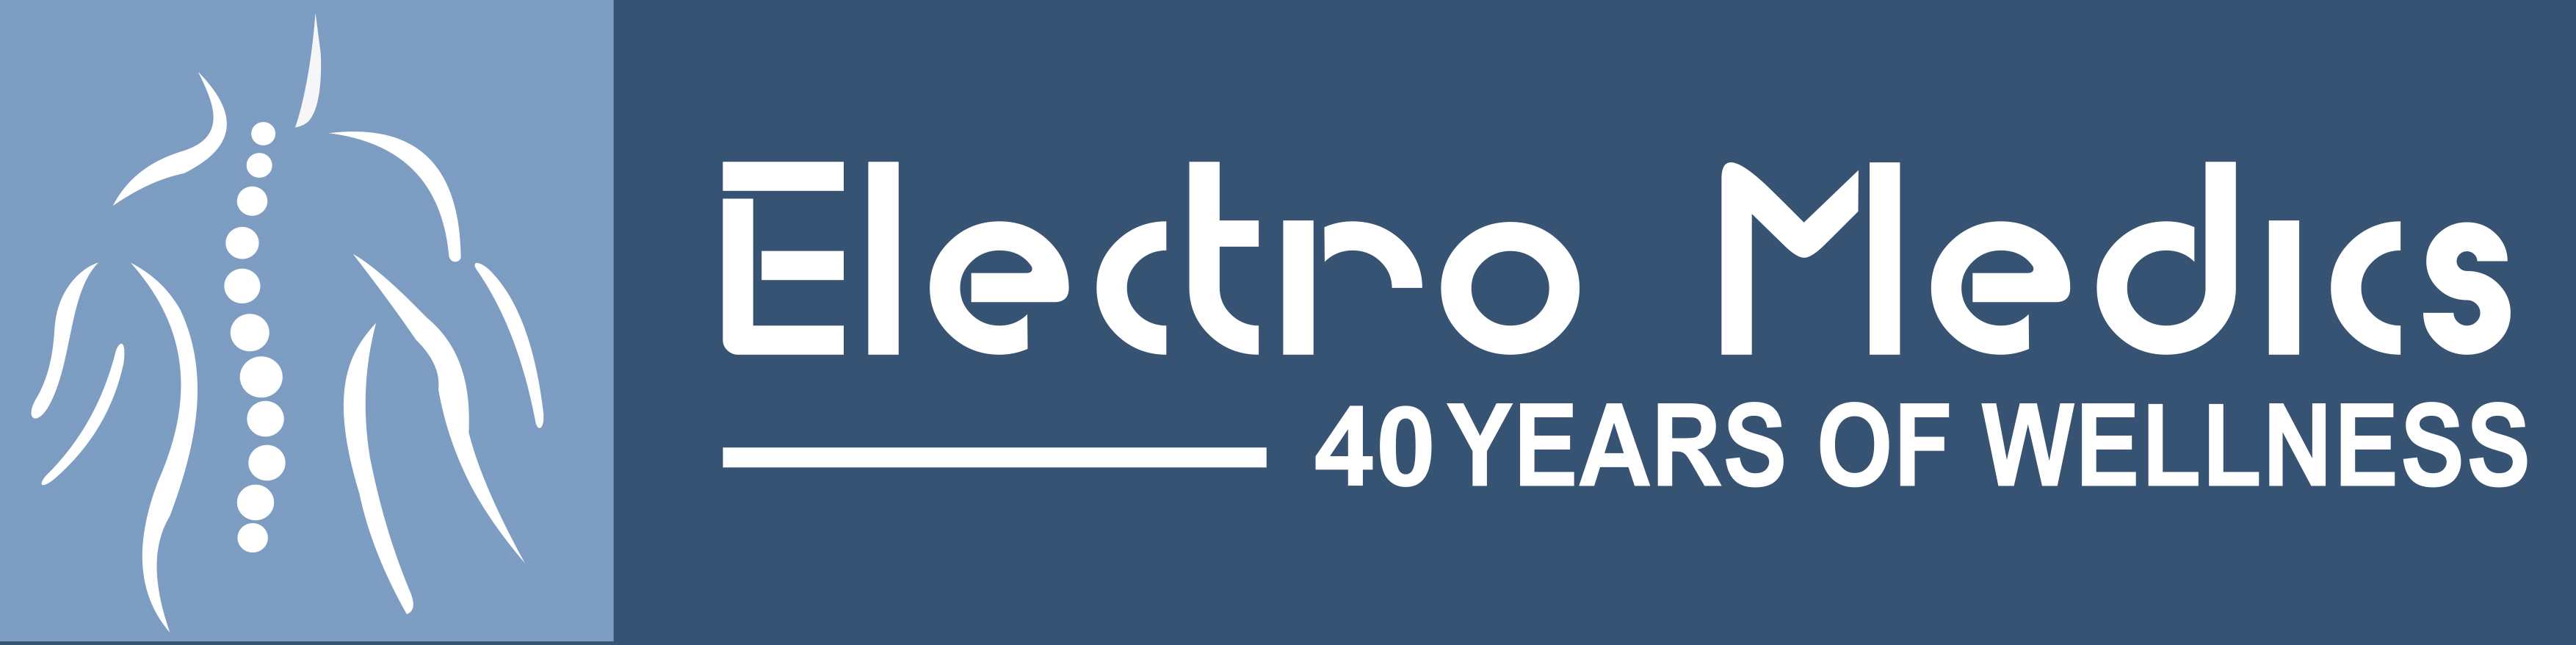 Electro Medics - 40 years of wellness